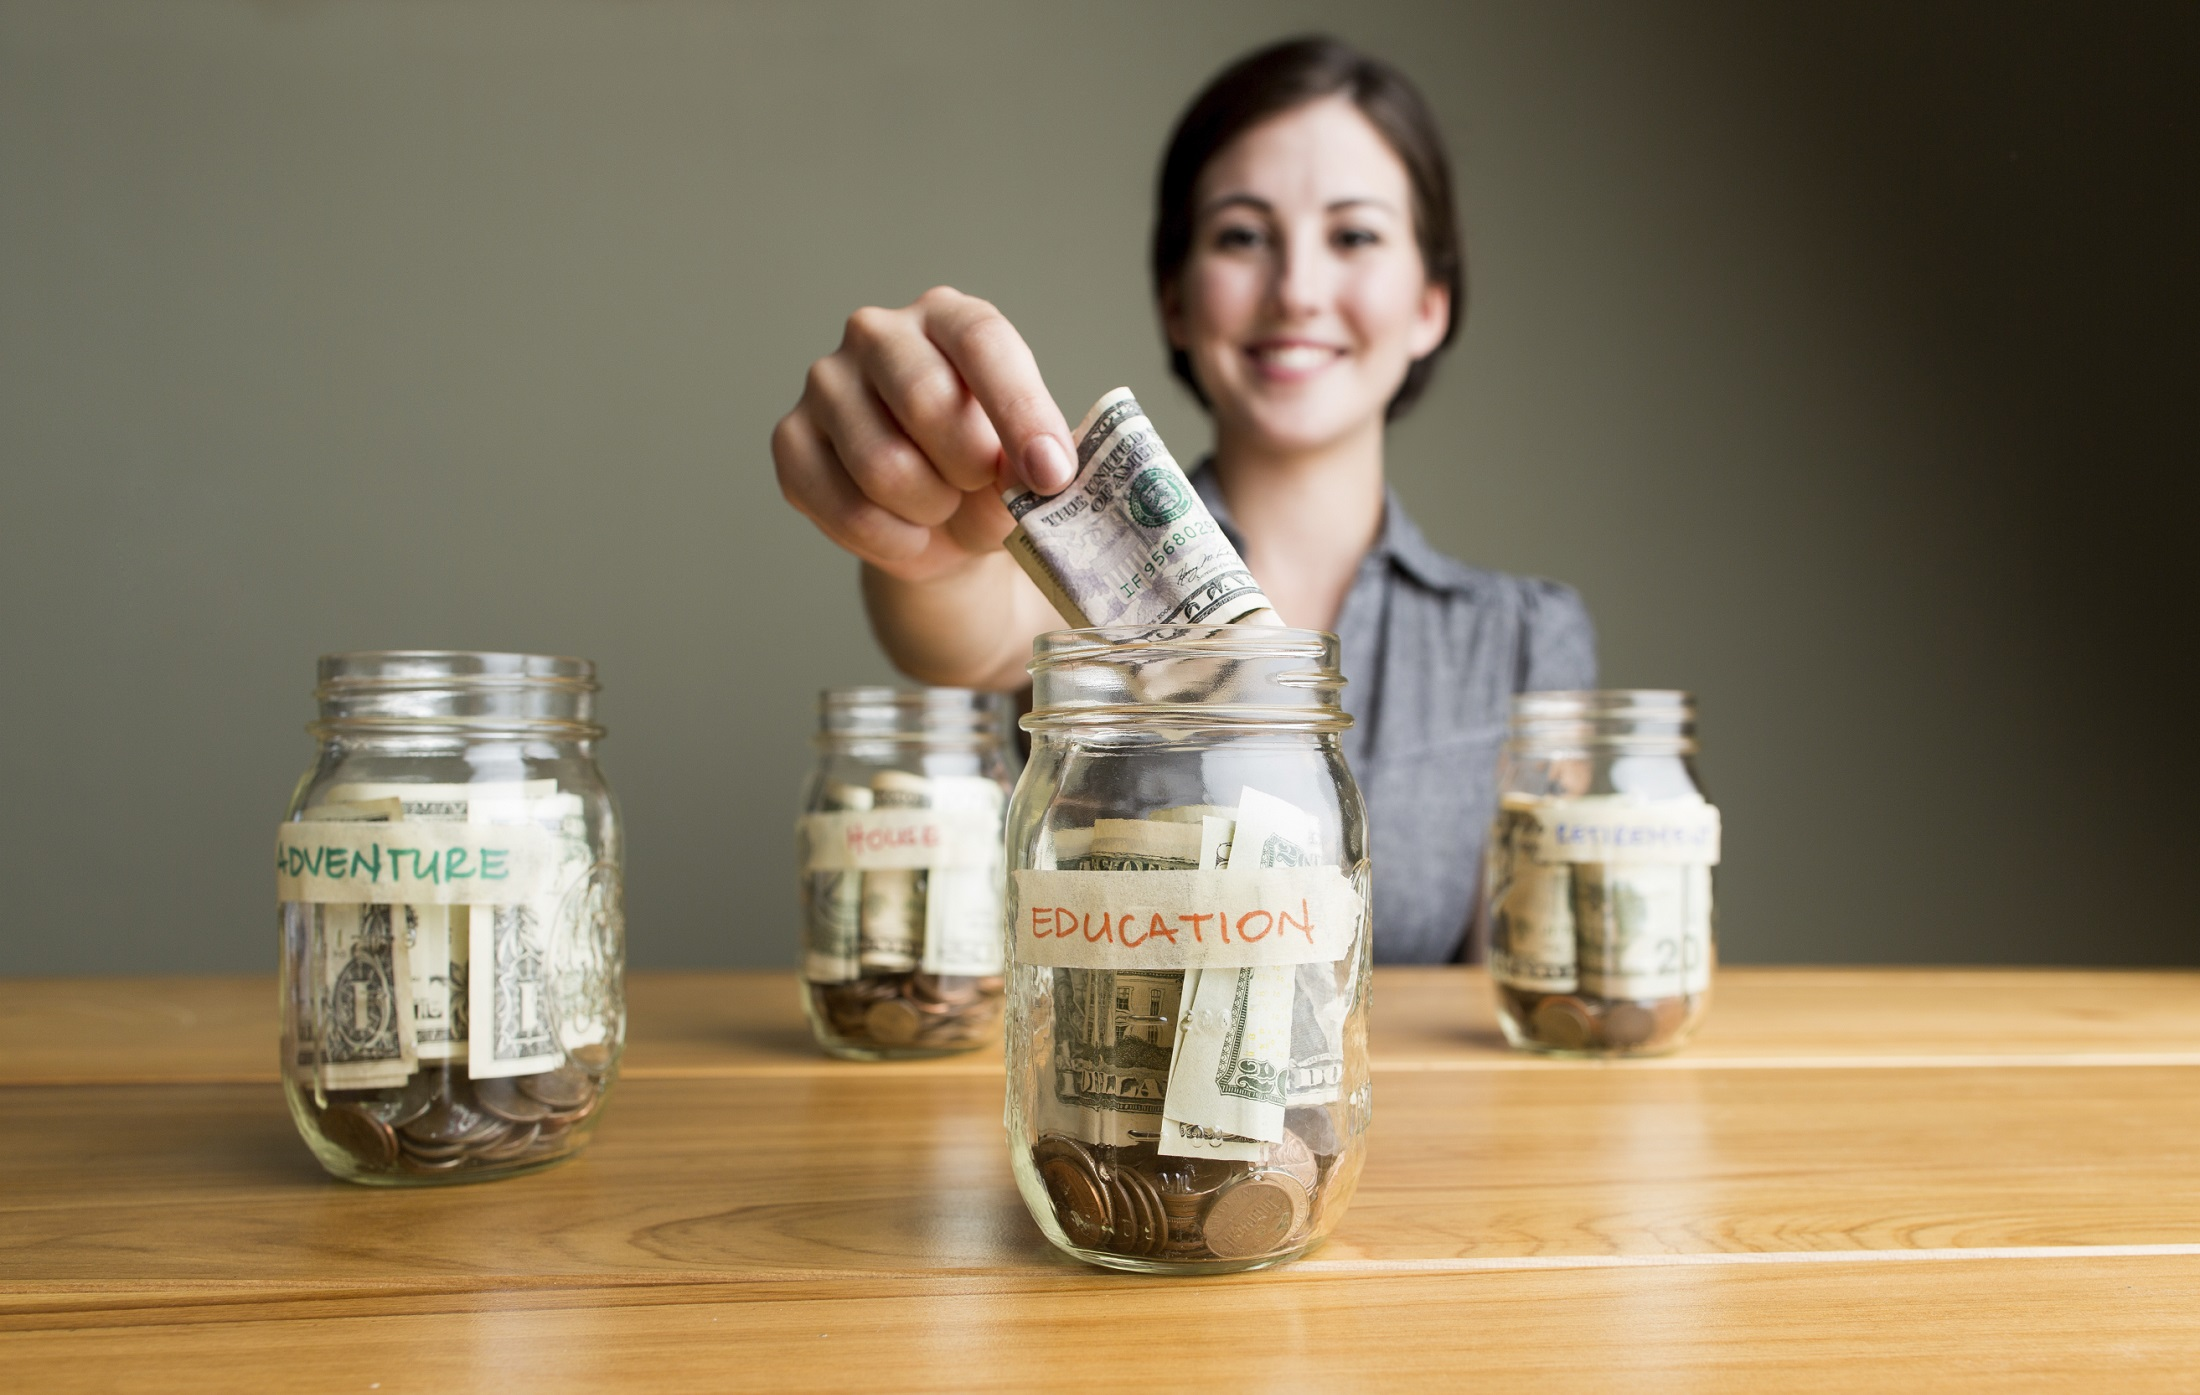 Coin Saver 10 Reasons To Open A Savings Account If You Haven 39t Yet